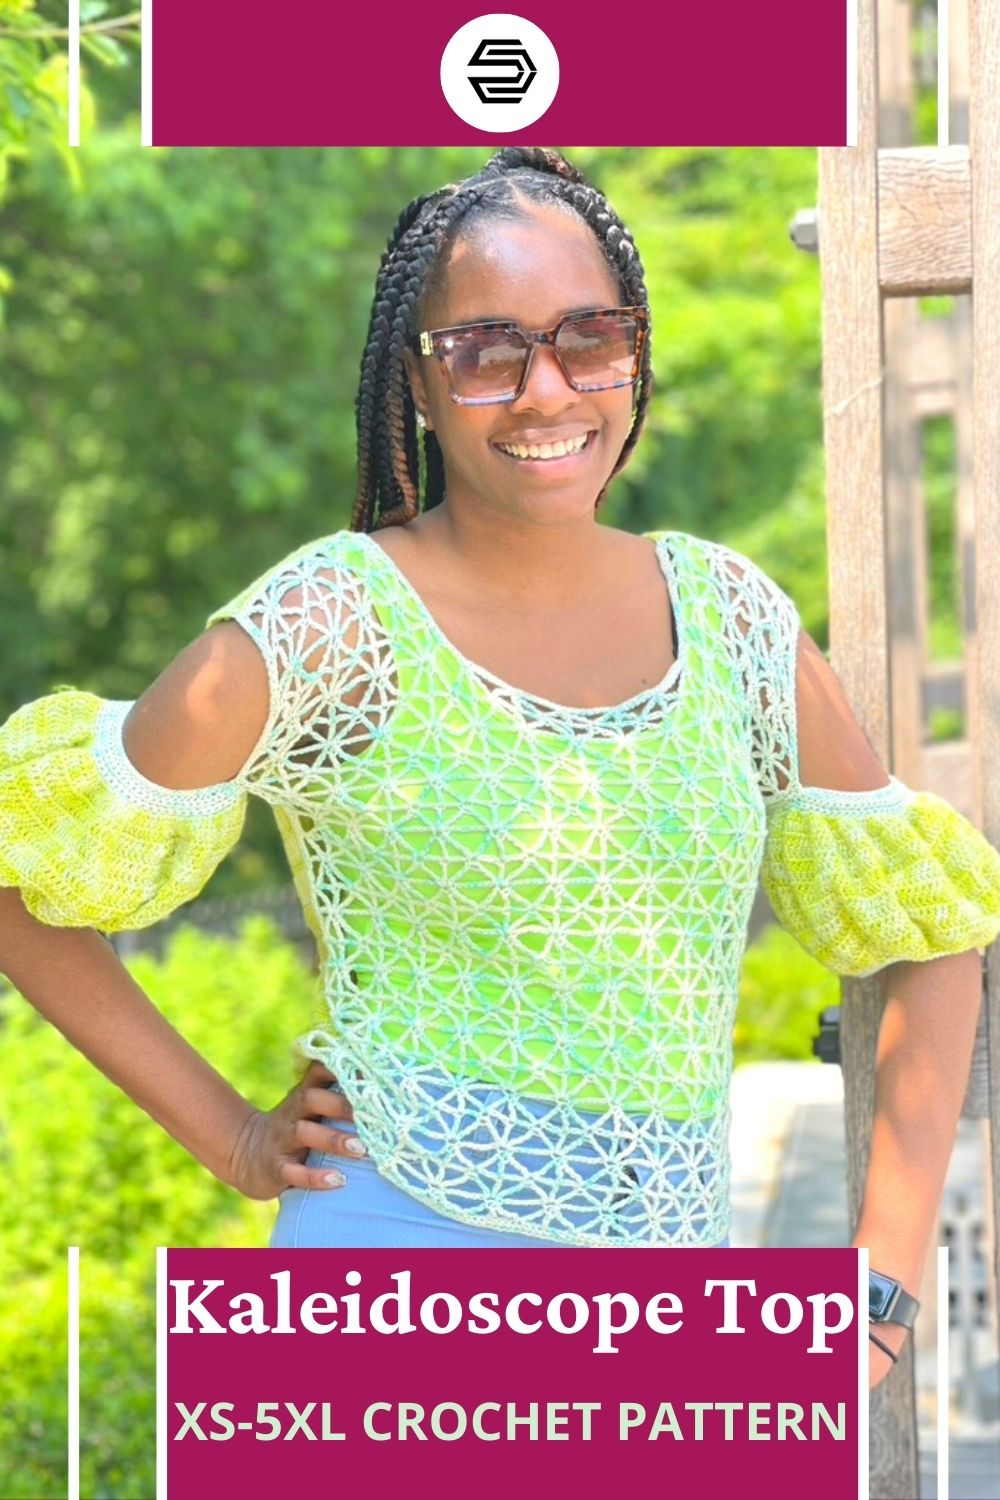 The Kaleidoscope Top is a size-inclusive crochet garment made with fingering weight yarn. With two unique sides and puff sleeves, it's reversible to show your style for any occasion. #creationsbycourtney #happinessmakealong2021